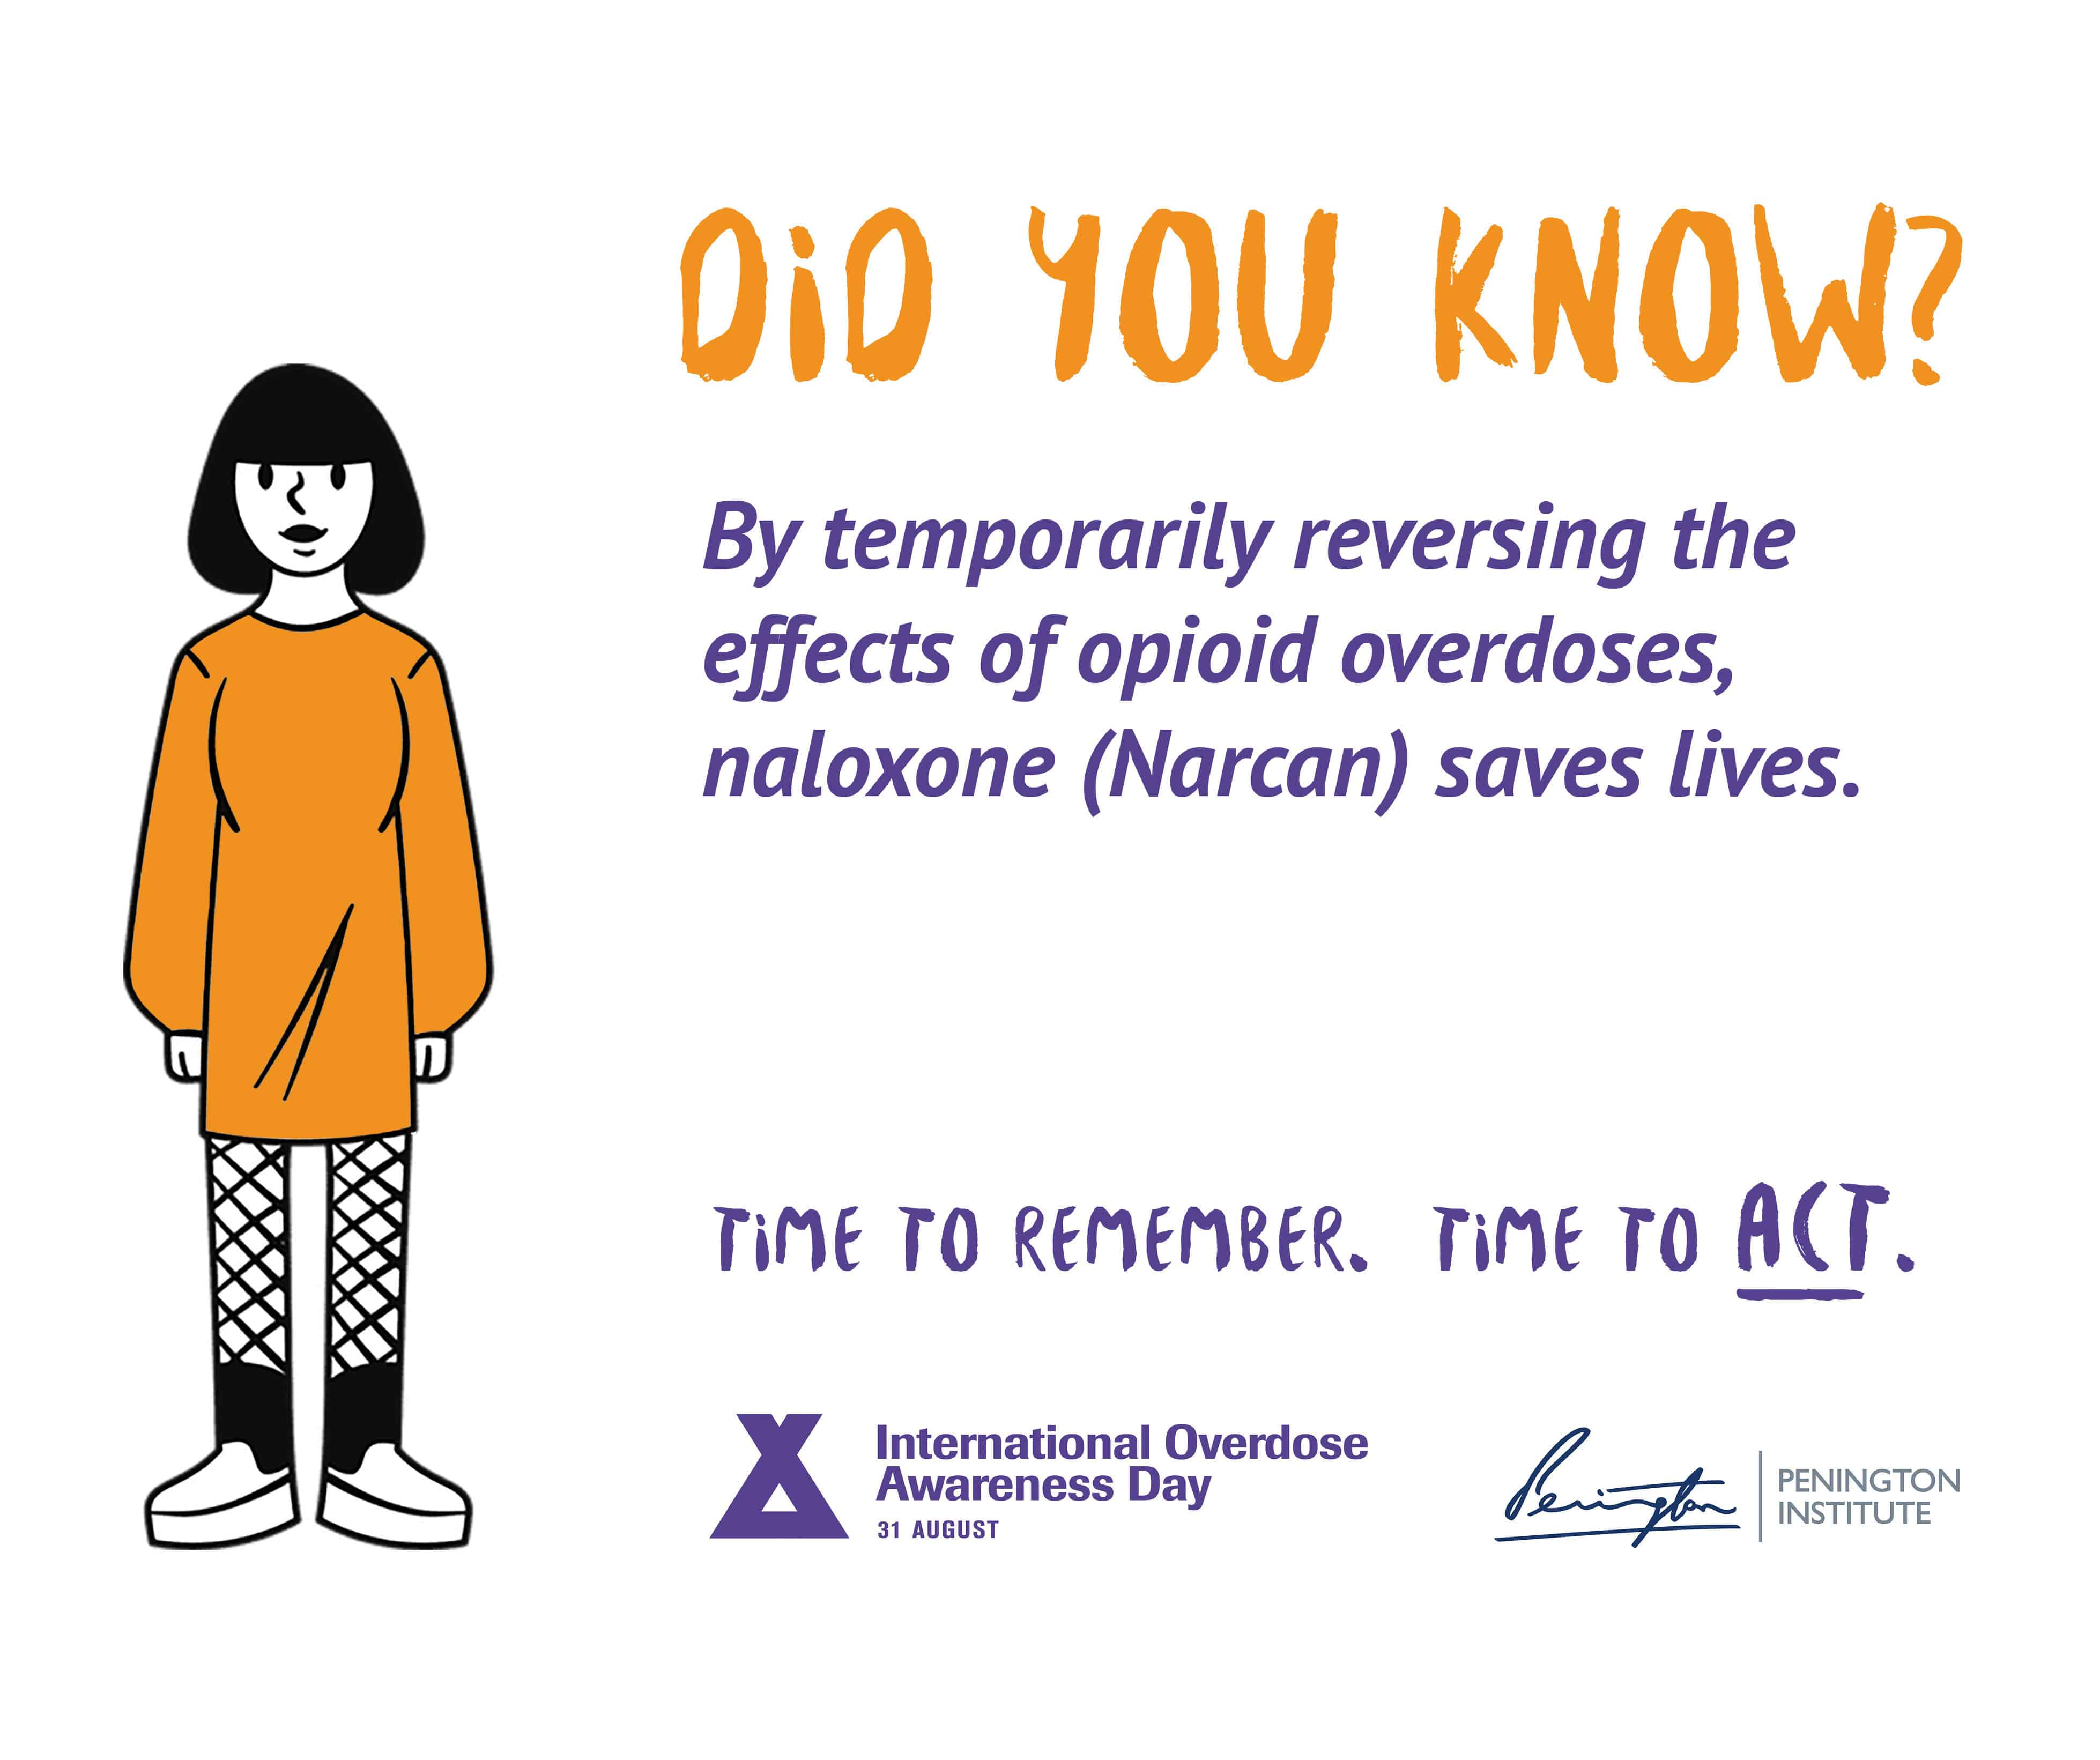 """A graphic from International Overdose Awareness Day and the Penington Institute. Heading reads """"DID YOU KNOW?"""" Text underneath reads: """"By temporarily reversing the effects of opioid overdoses, naloxone (Narcan) saves lives. Time to remember. Time to act."""" A drawing of a person in an orange jumper stands alongside."""